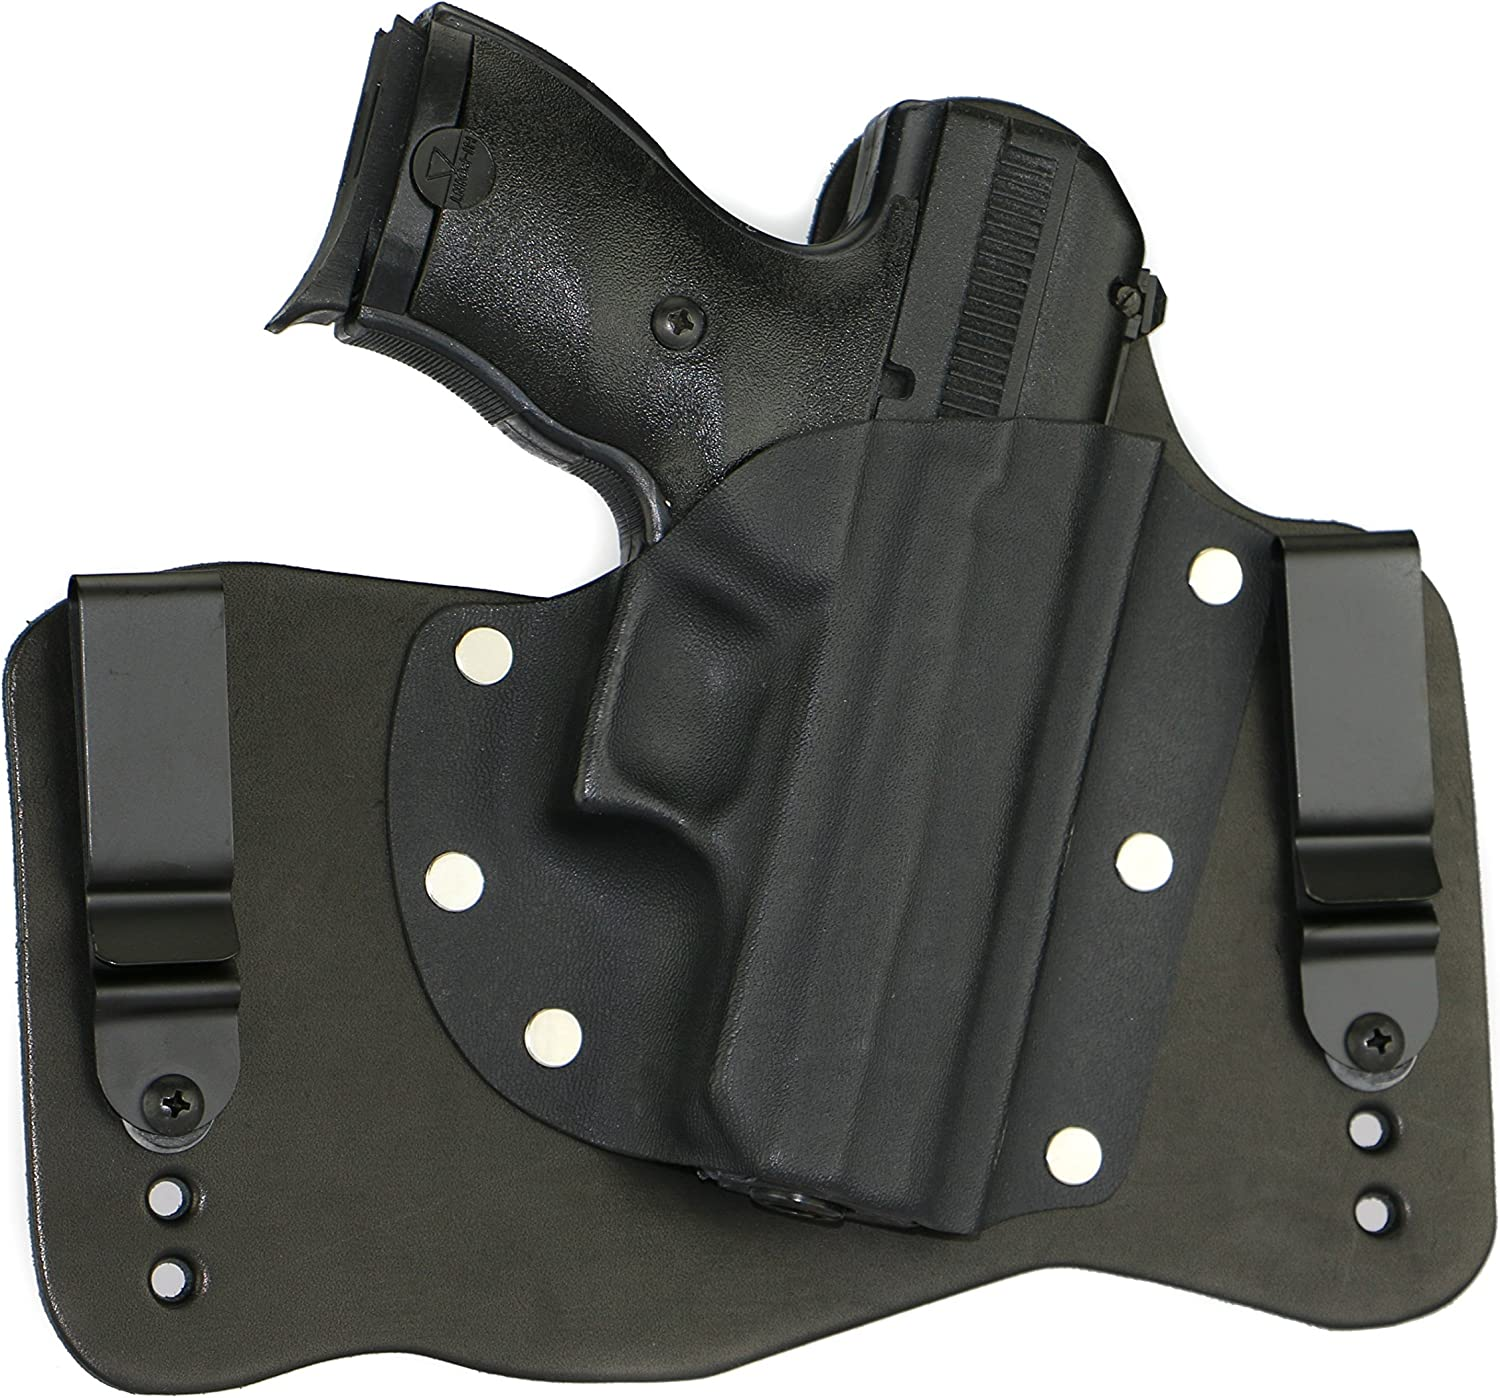 """CF380 8RD """"CONCEALED CARRY"""" UPGRADE KIT FOR HI-POINT C9 9MM"""